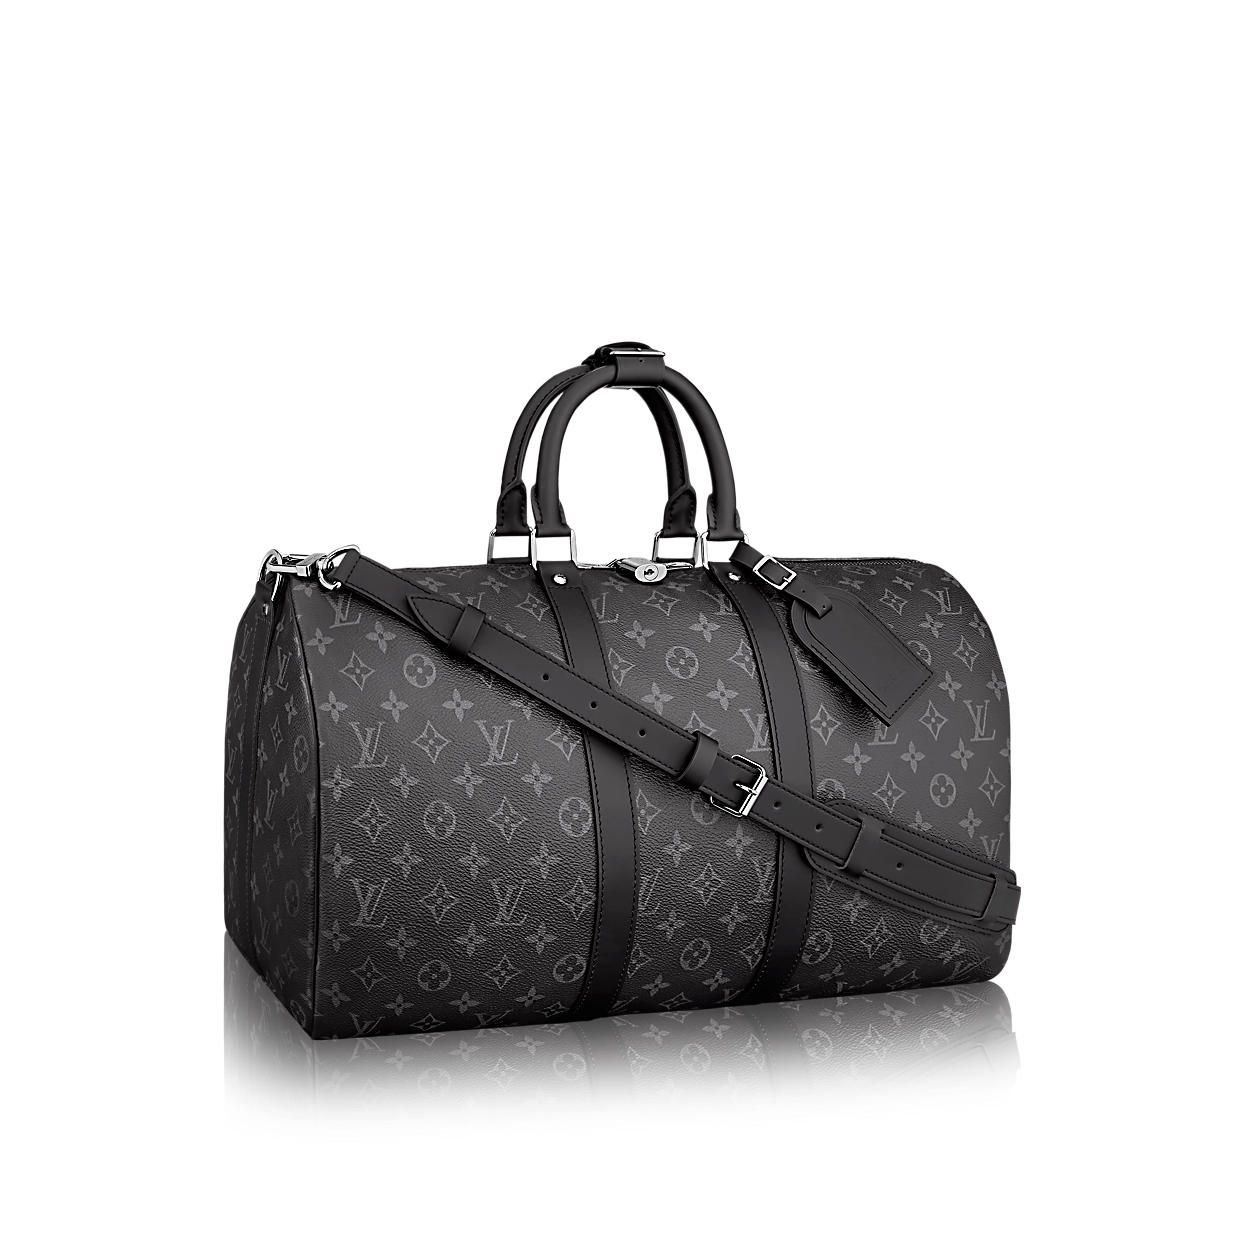 3a9c3fd00850 Keepall 55 Bandoulière Monogram Eclipse in MEN s TRAVEL   LUGGAGE  collections by Louis Vuitton